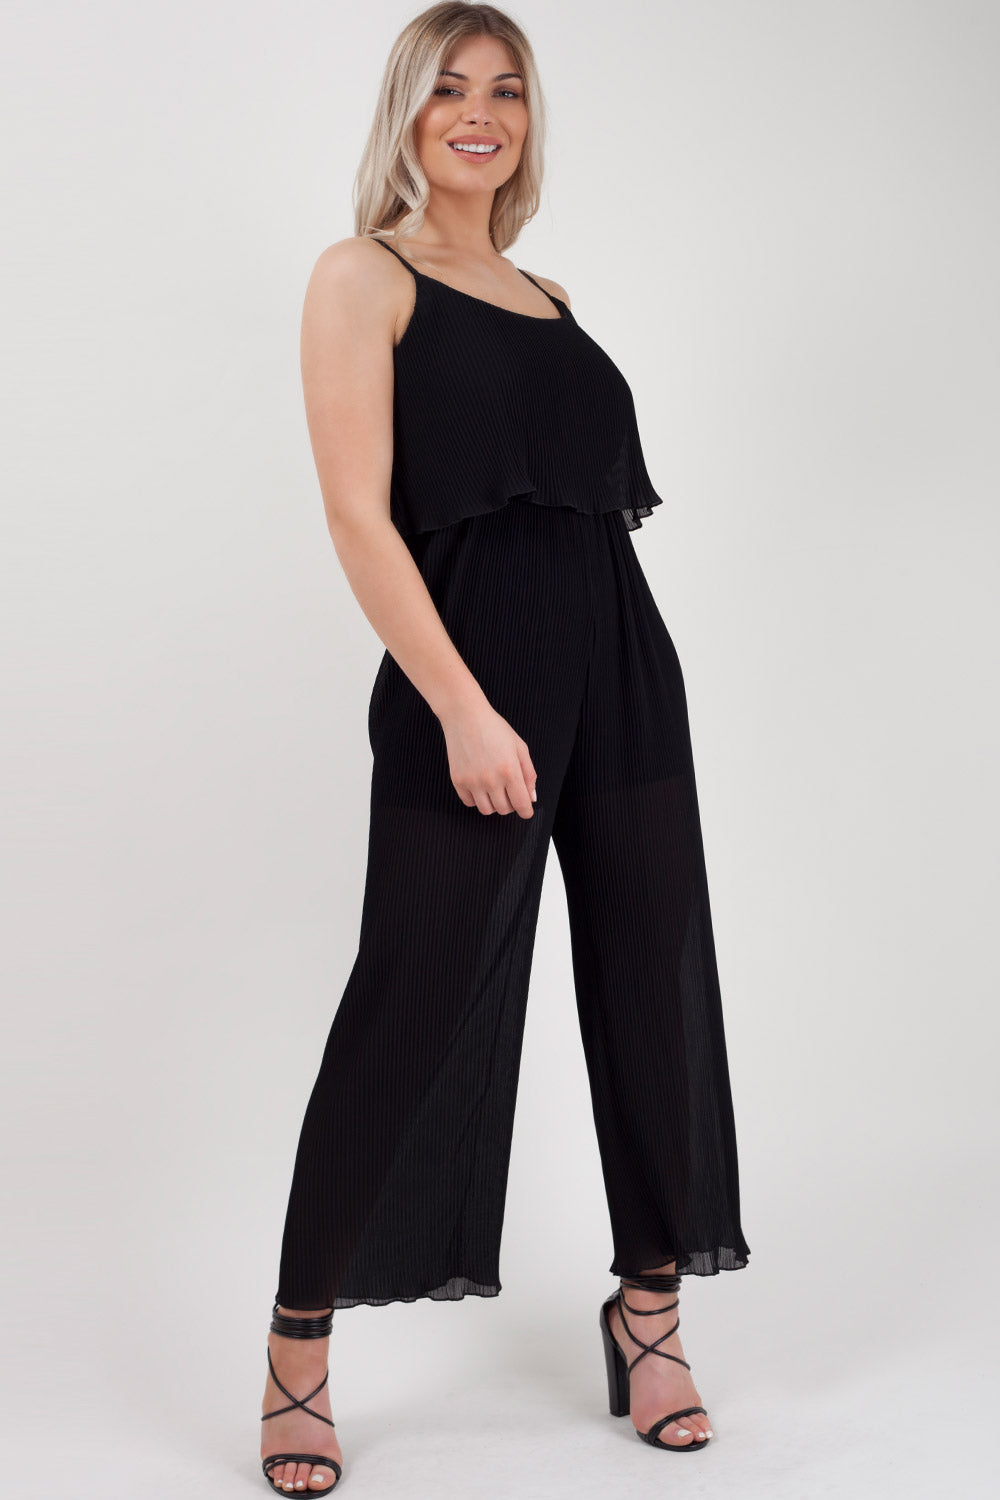 8ccd29aab4 Black Wide Leg Layered Jumpsuit – Styledup.co.uk